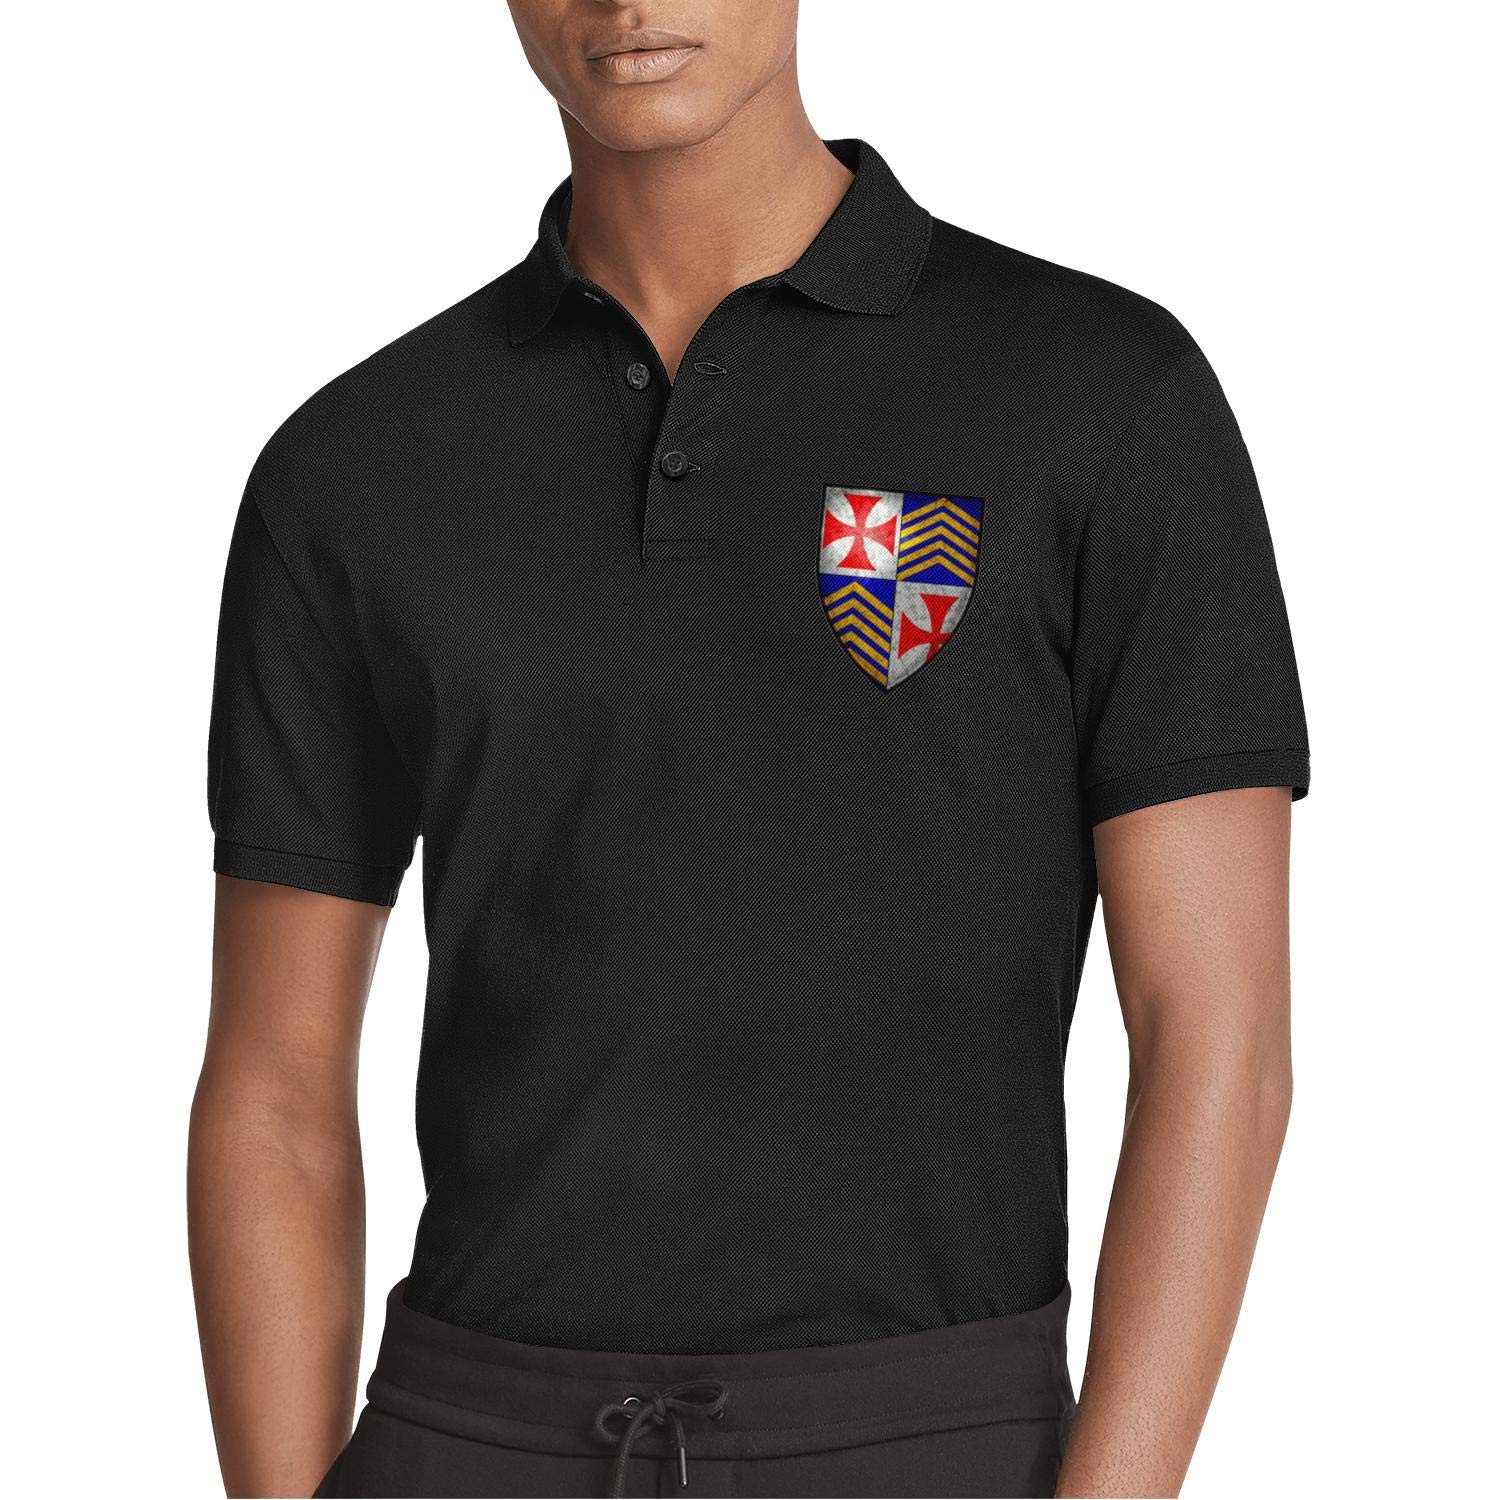 ZWZHI All Things Knights Templar Printed Mens Polo Shirt Office Light Weight Shirt Top